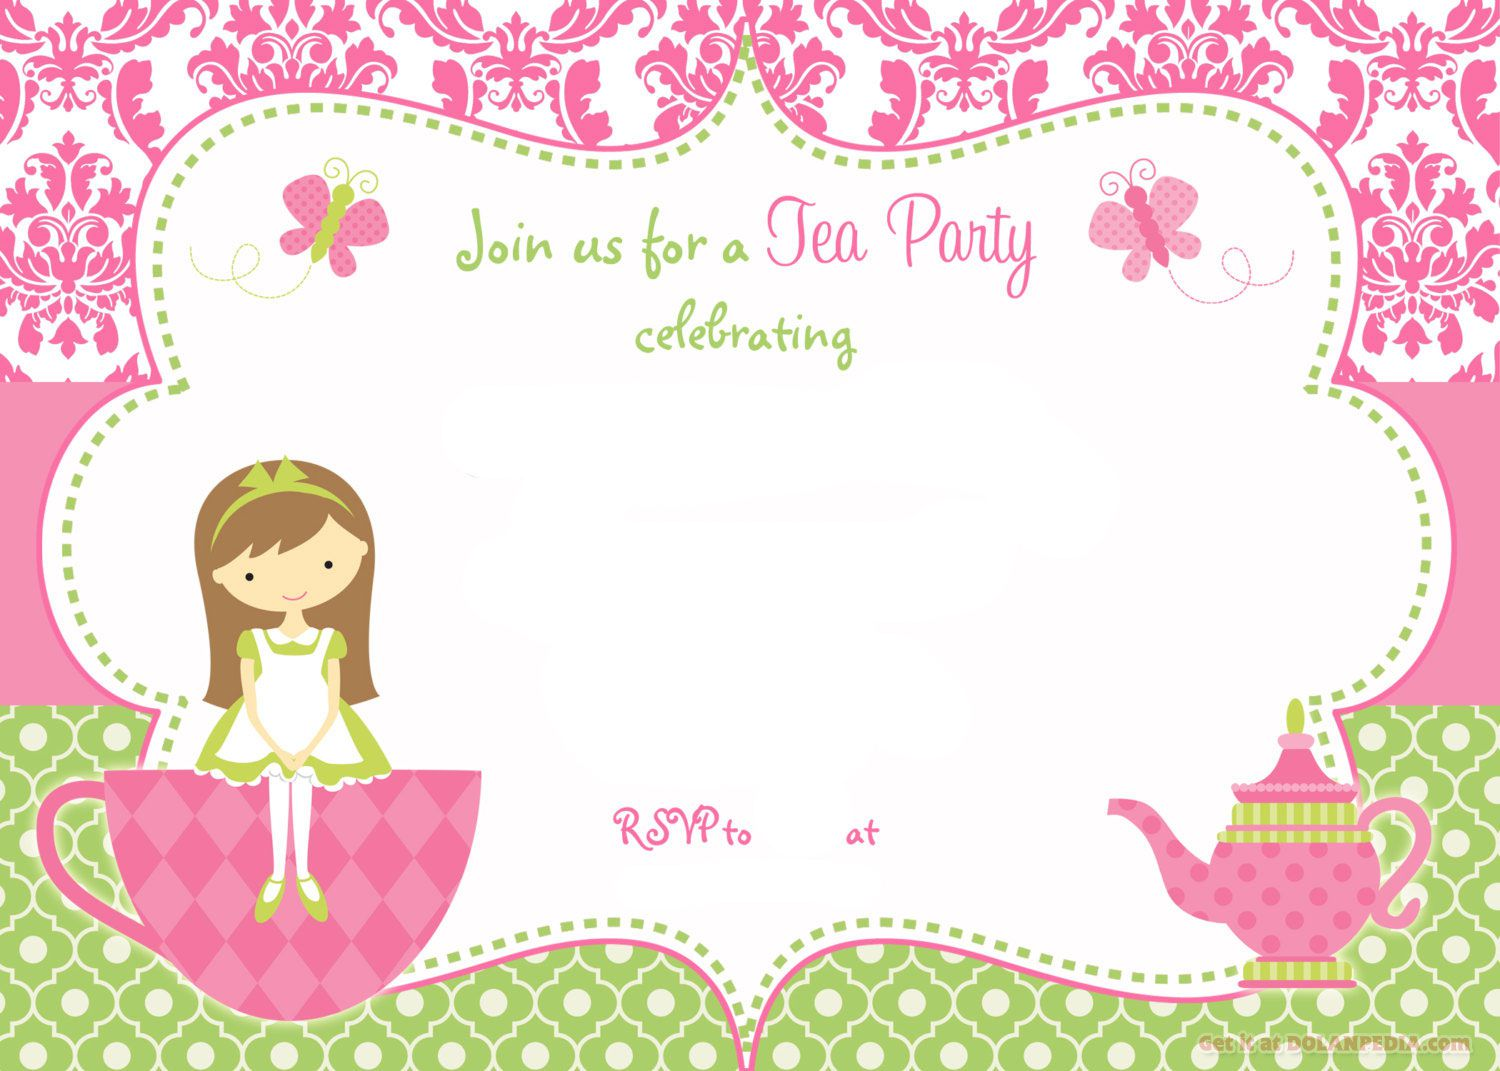 007 Incredible Tea Party Invitation Template Image  Templates High Free Download Bridal ShowerFull